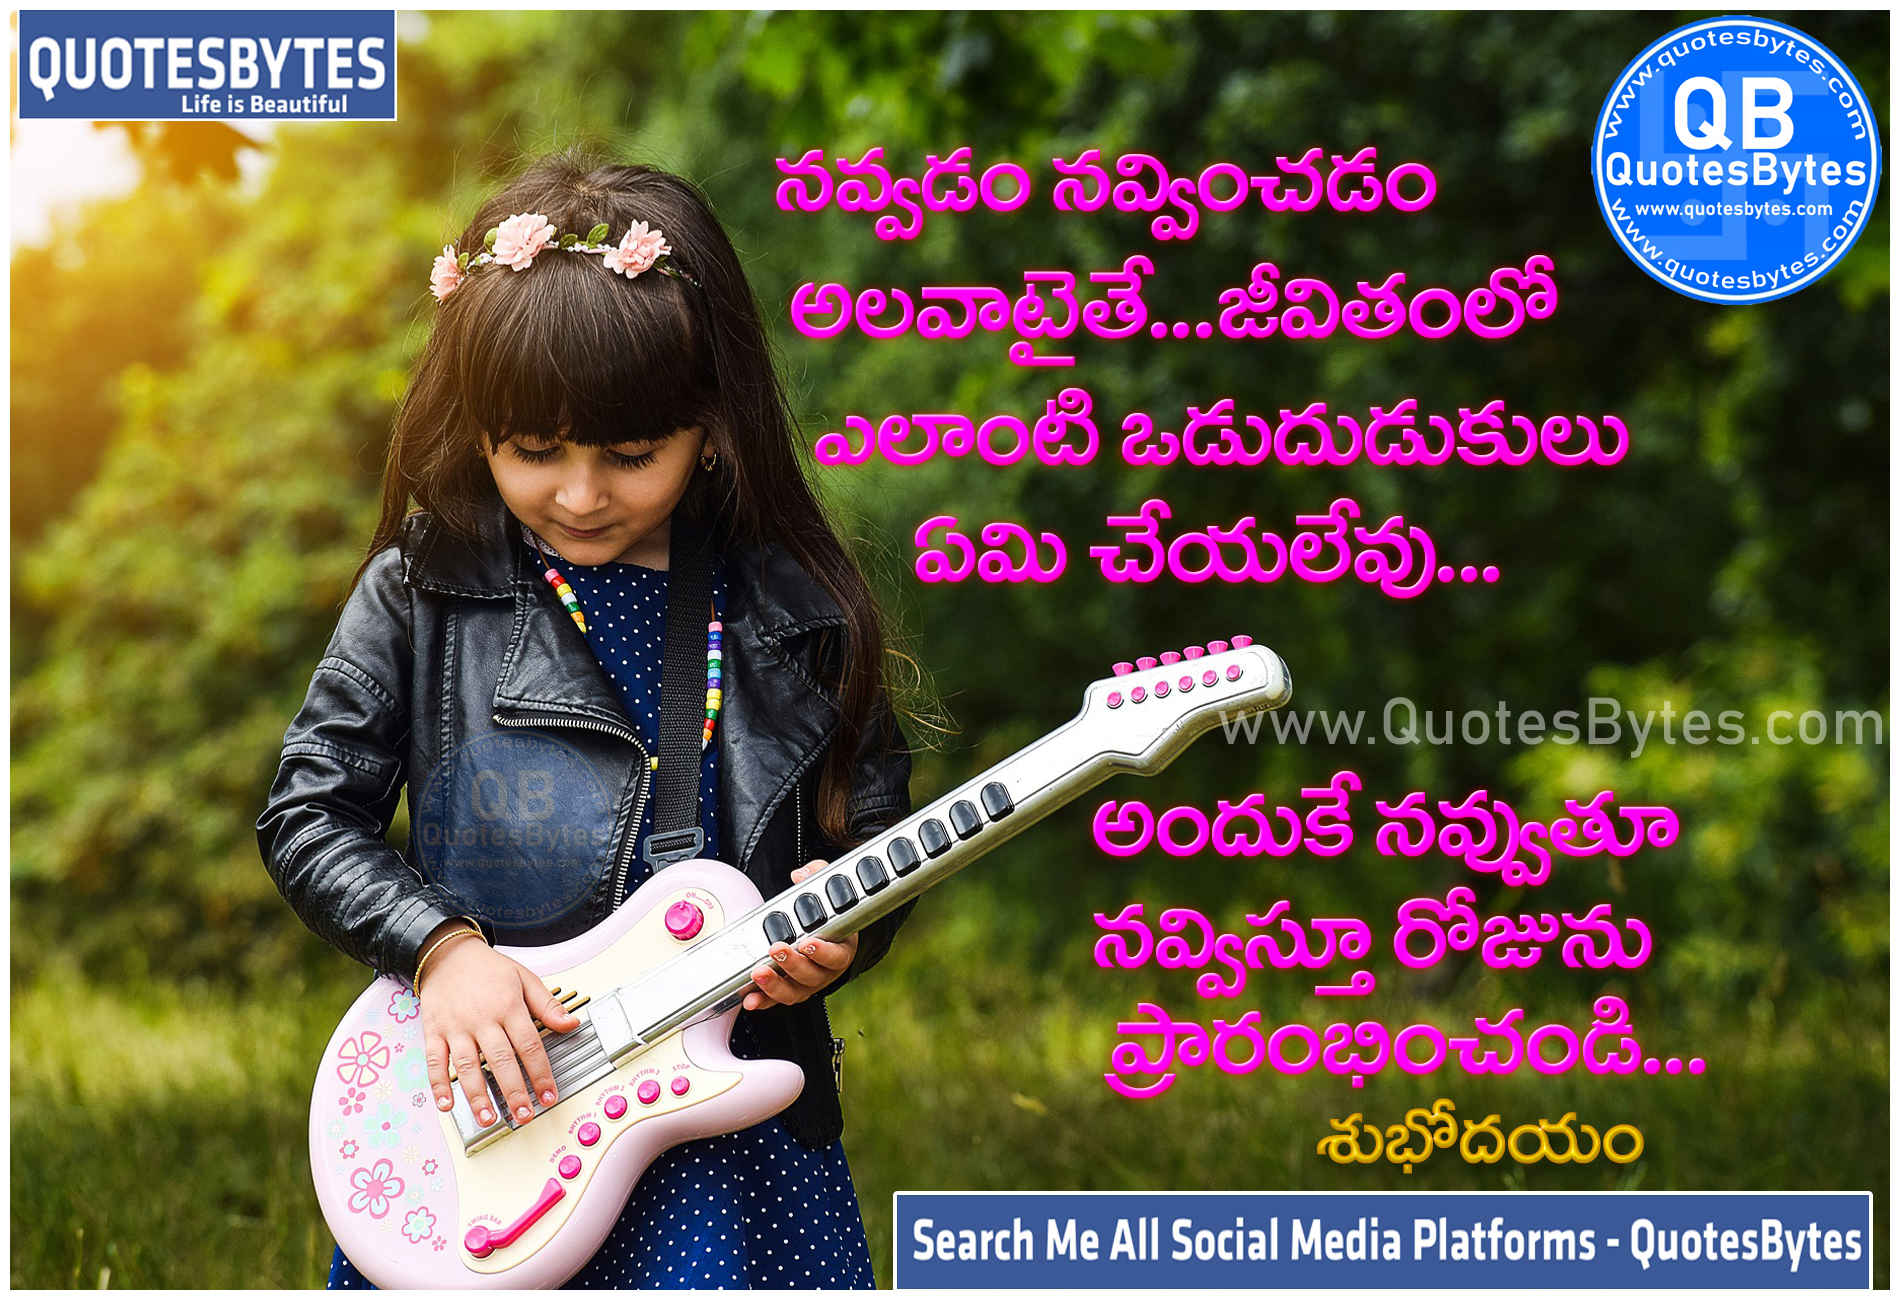 Life Motivational Good Morning Quotes In Telugu WhatsApp Messages Status Quotes - QuotesBytes.com